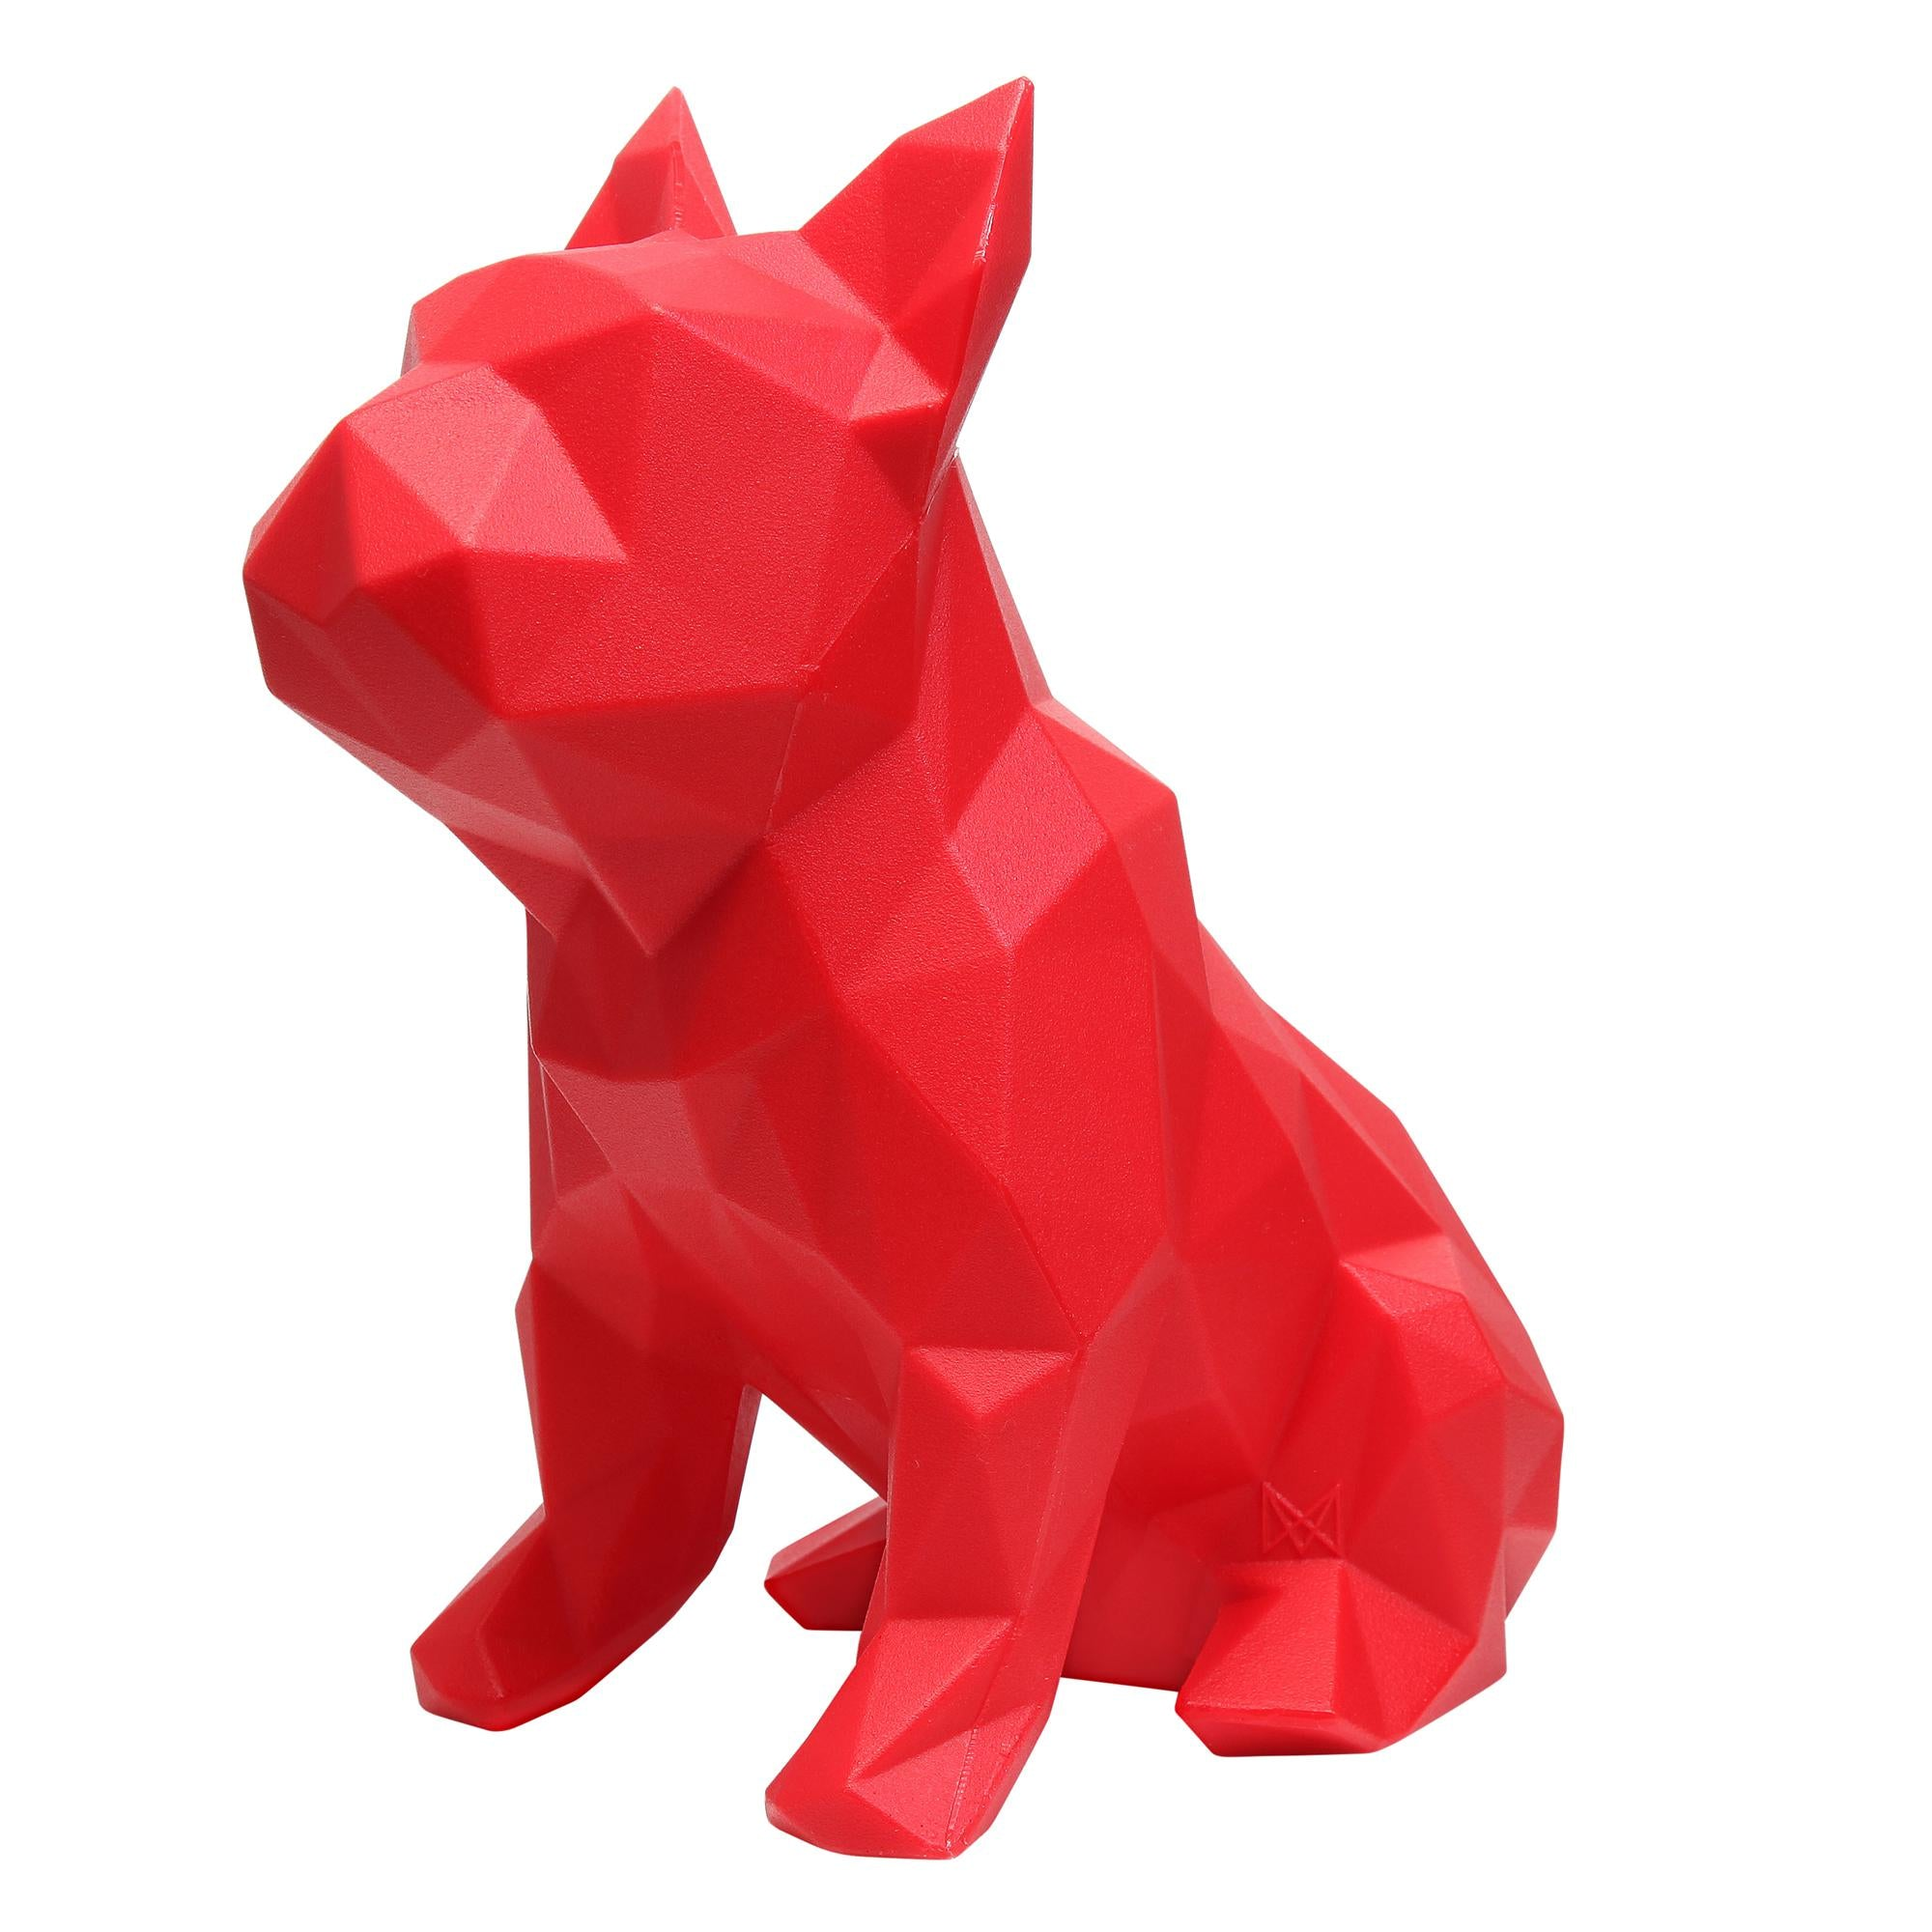 French Bulldog Geometric Sculpture - FRANK in Red